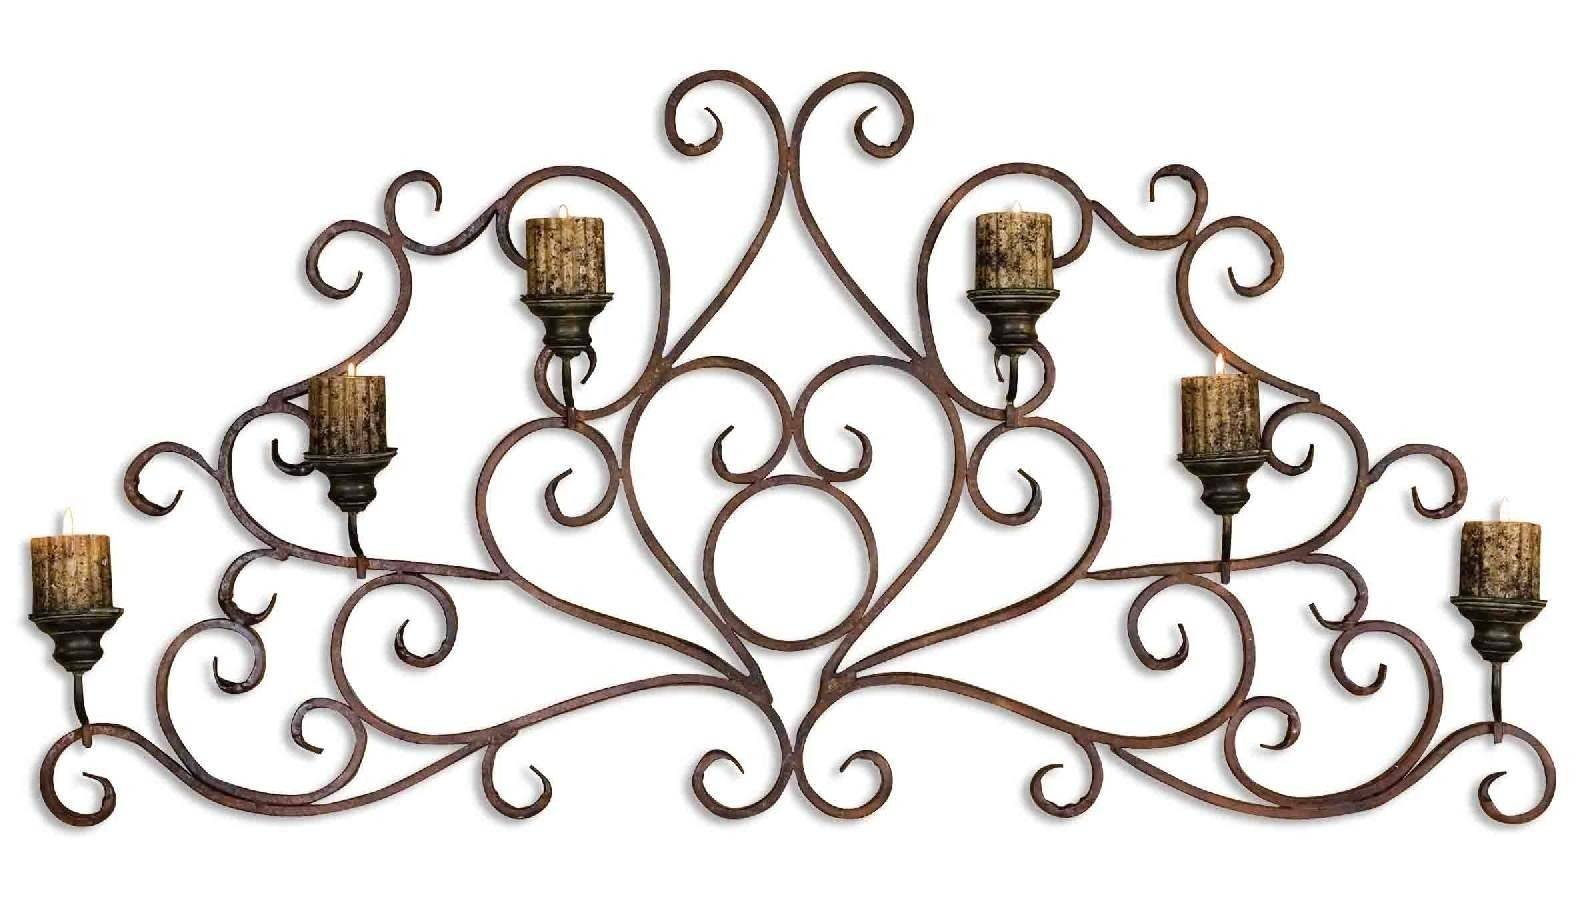 Uttermost Juliana Metal Wall Art Sconce | Rug Super Center Intended For 2017 Uttermost Metal Wall Art (Gallery 17 of 20)